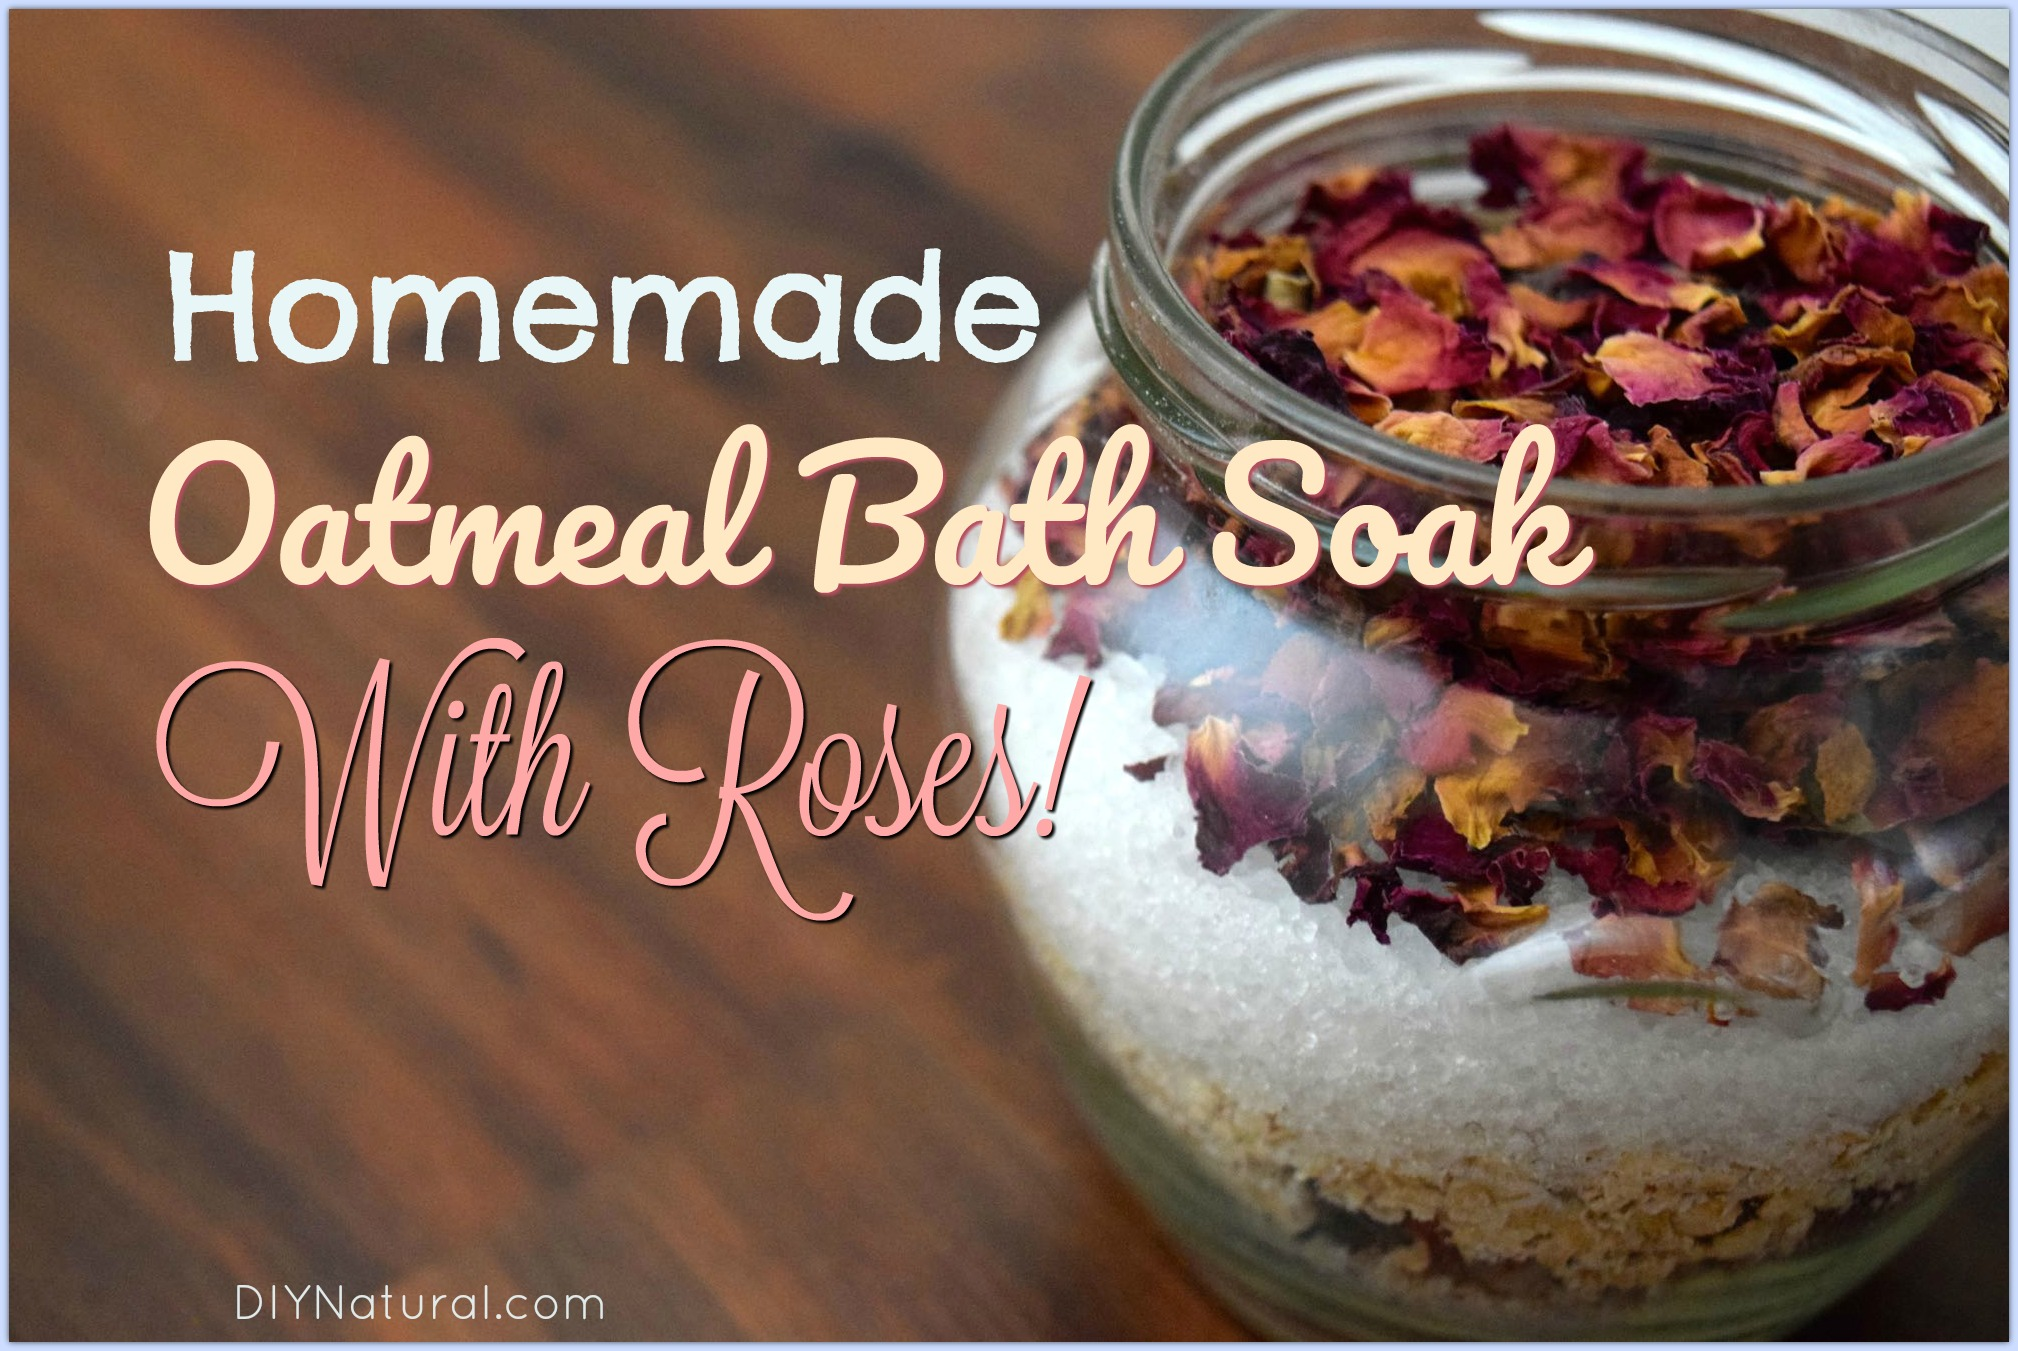 Homemade Oatmeal Bath Recipe: A